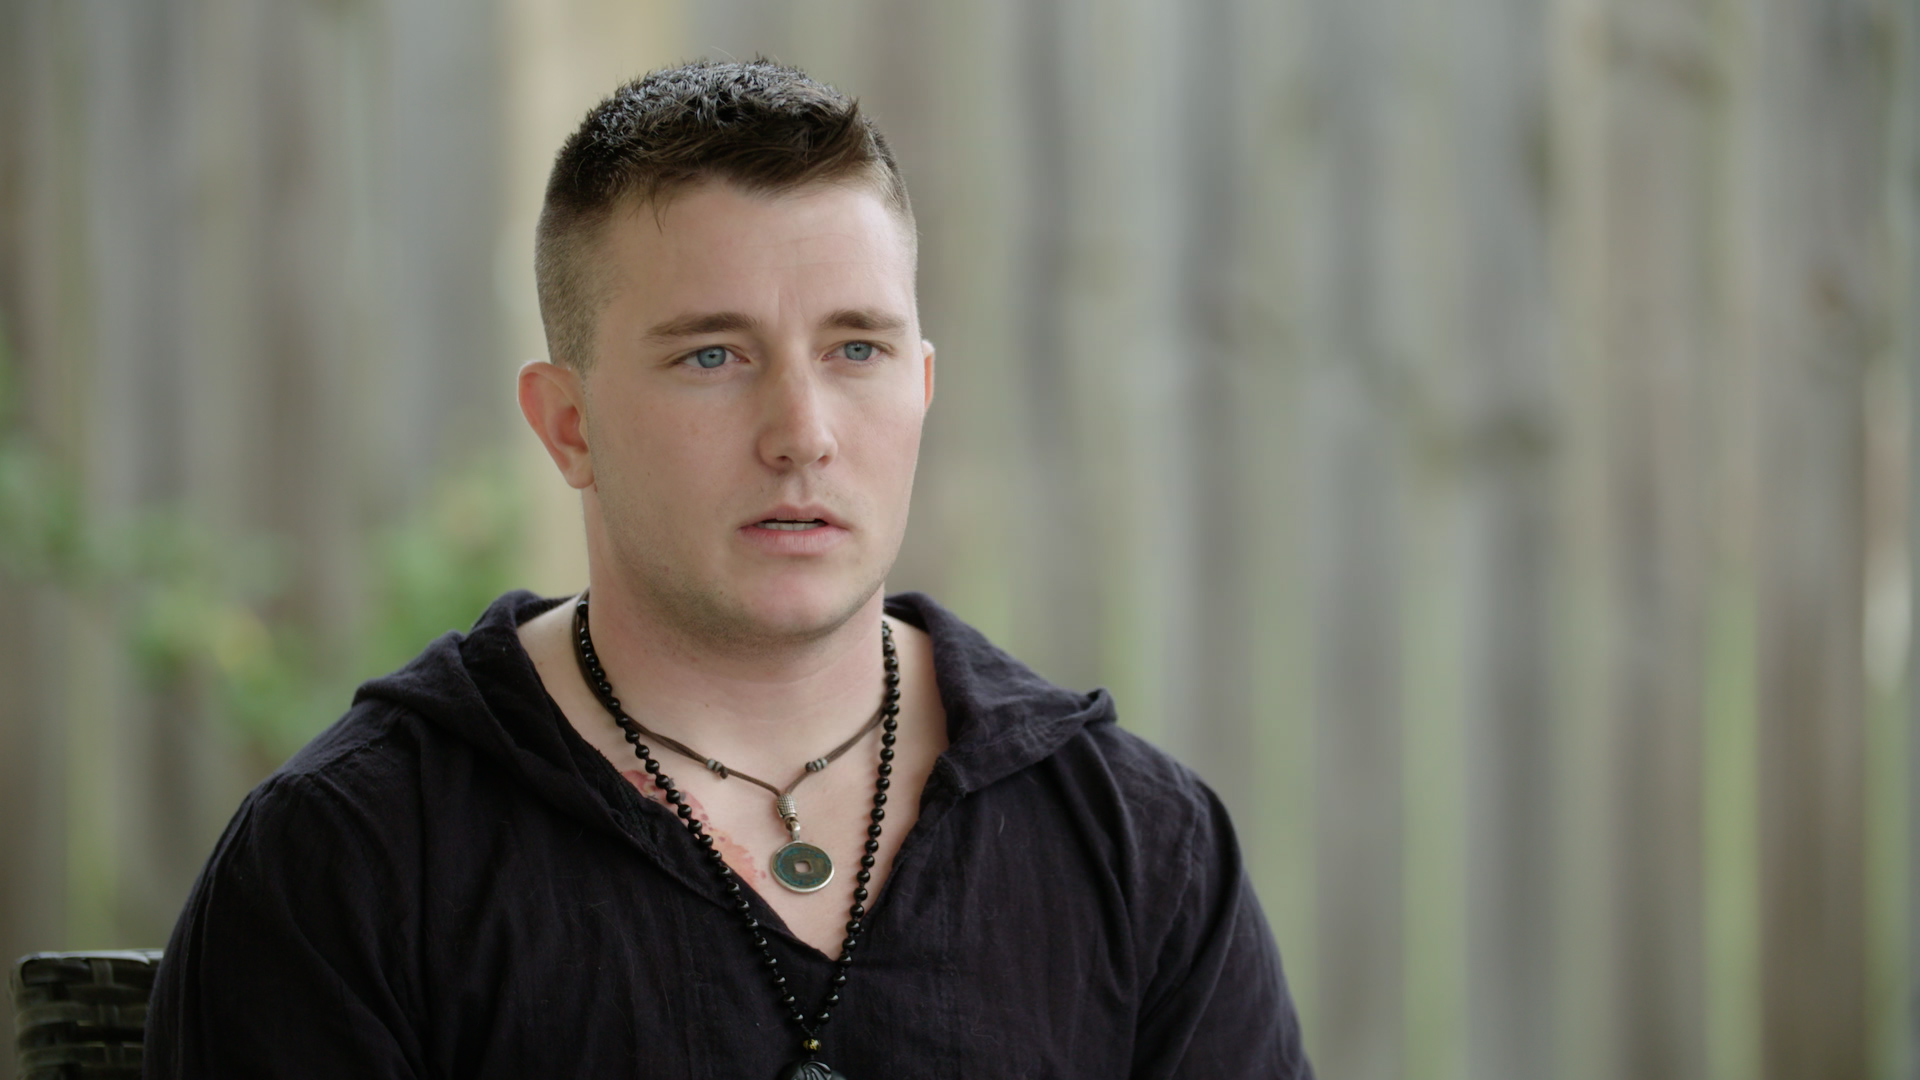 This transgender soldier won't give up on the military despite Trump's ban